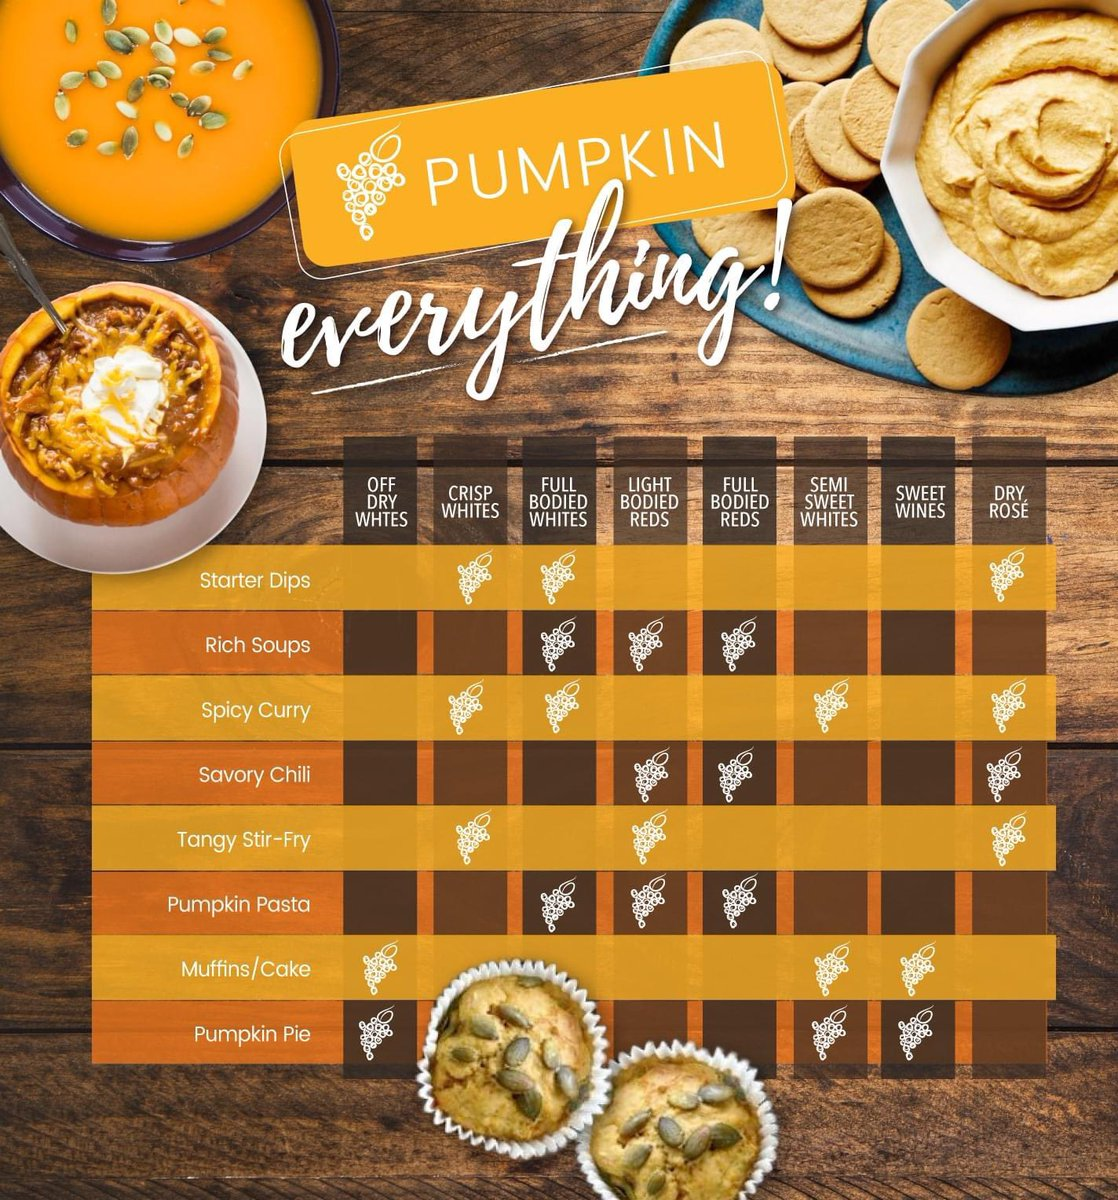 It's #NationalPumpkinDay. Make it a great day with these perfect food & wine pairings #wineguide #travelingvineyard #pumpkin #foodandwine #wineguidelife https://t.co/LLXr9BIaJm